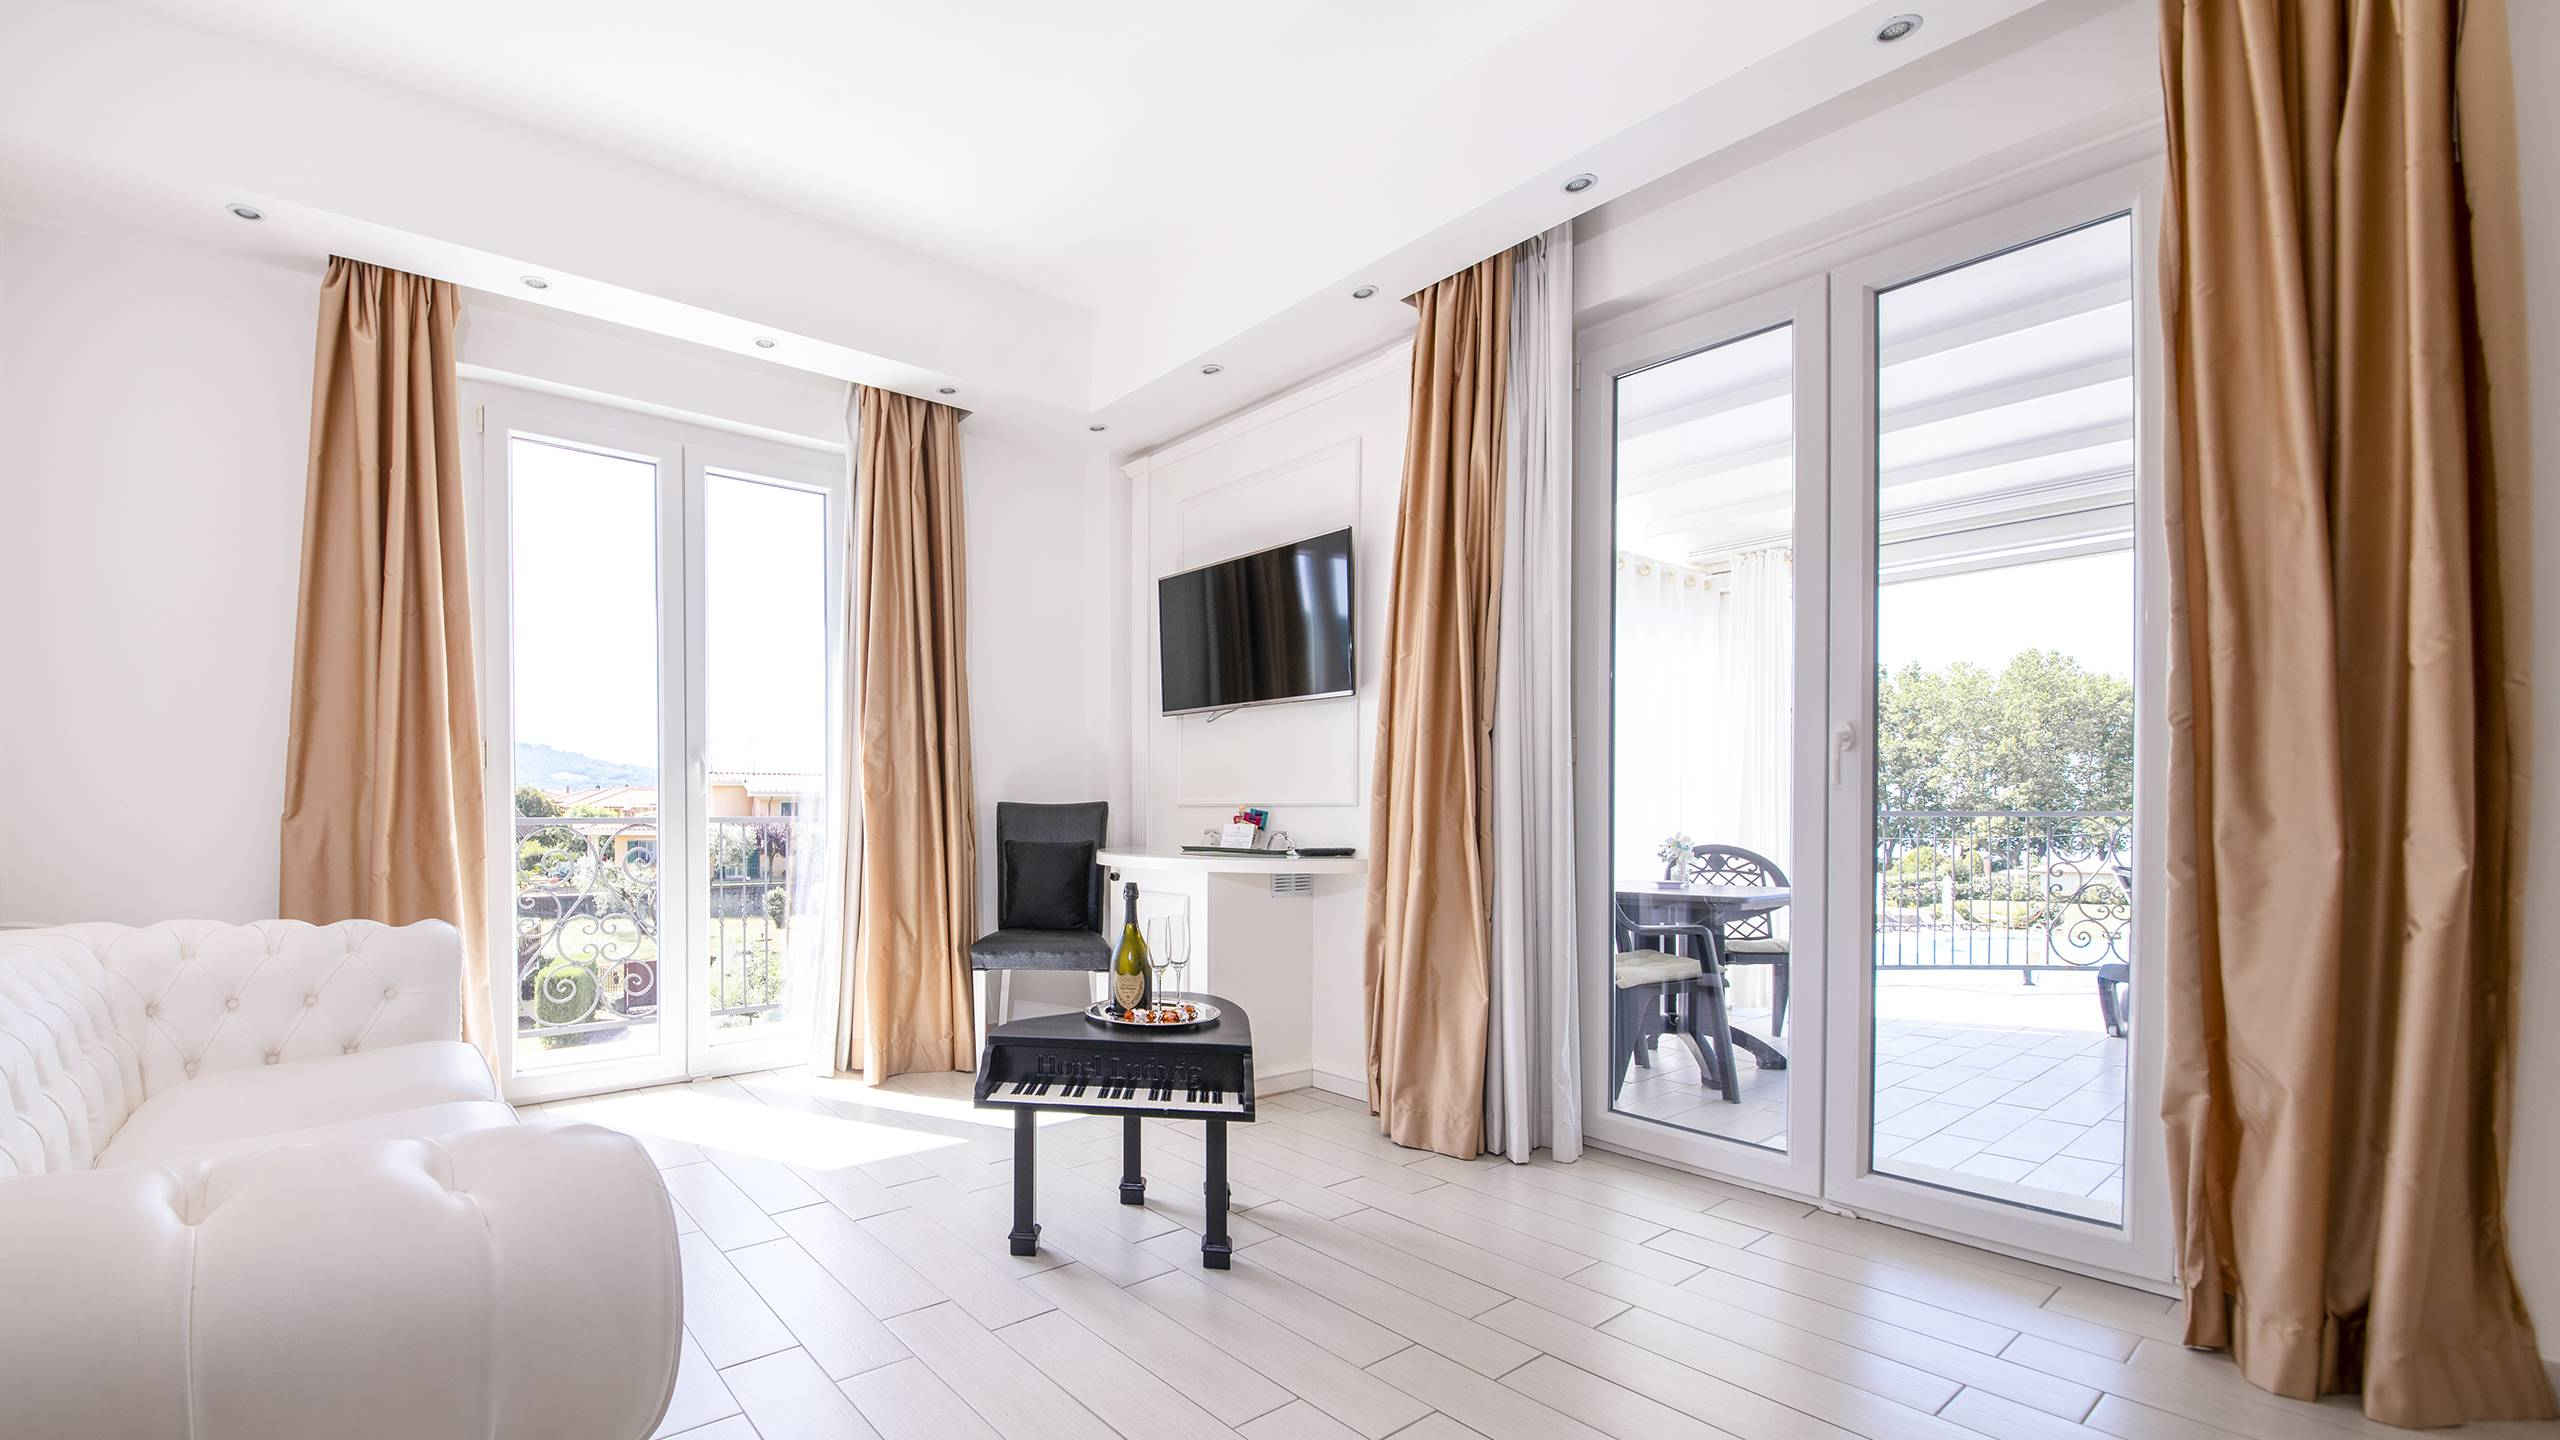 Ludwig-Boutique-Hotel-Bolsena-Zimmer-suite-deluxe-spa-1-5